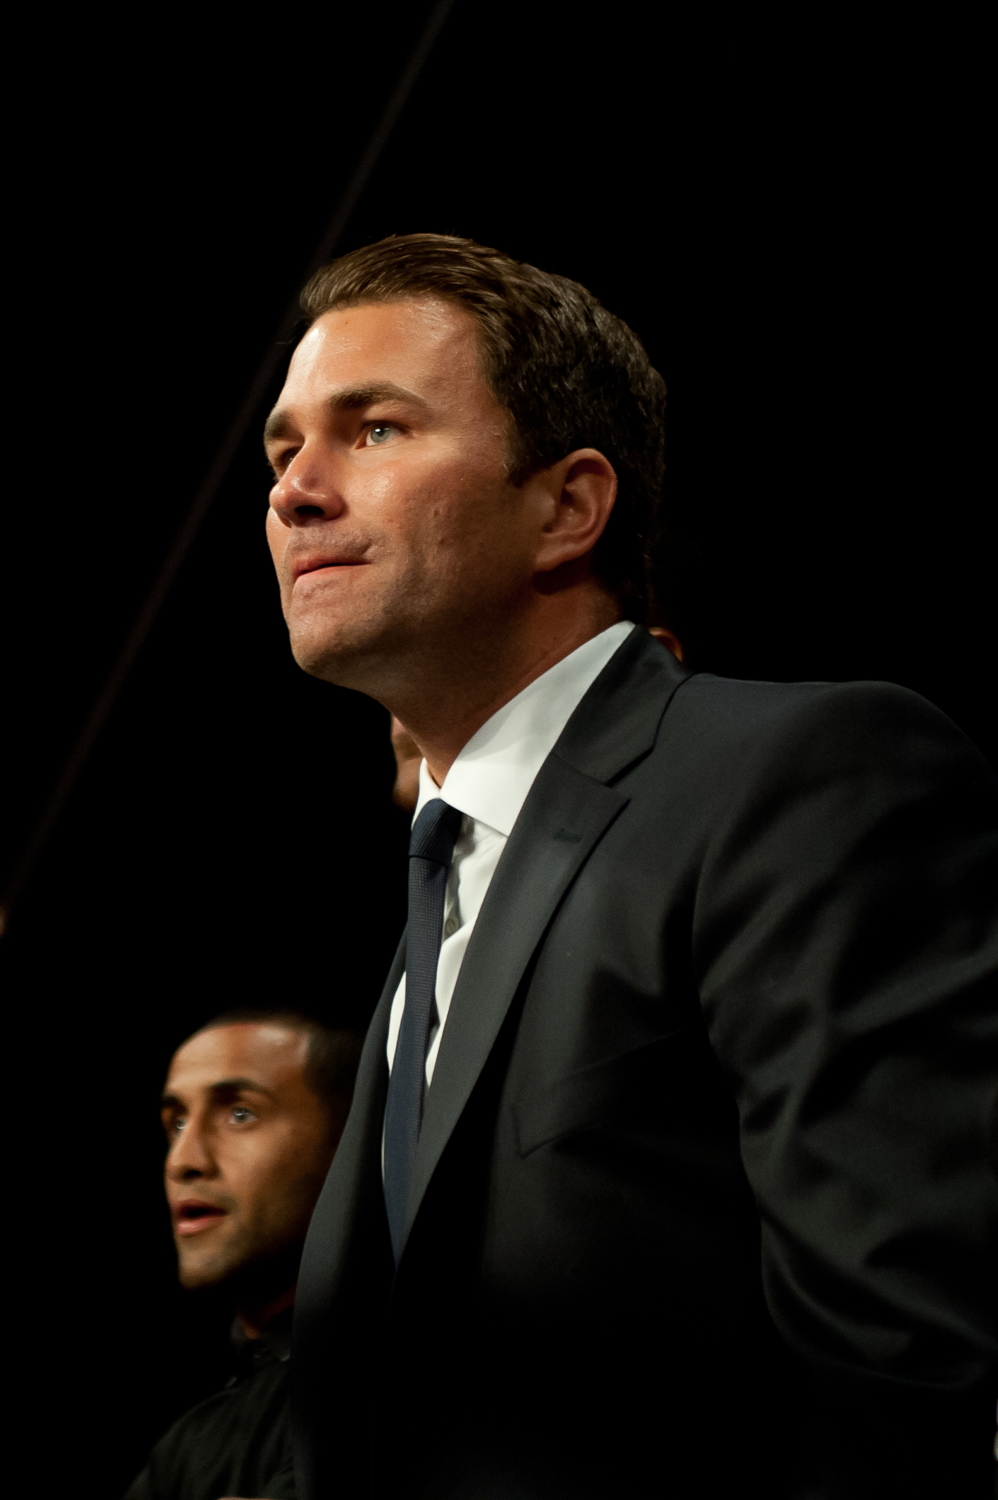 24hrs Eddie HEarn (21 of 25).jpg